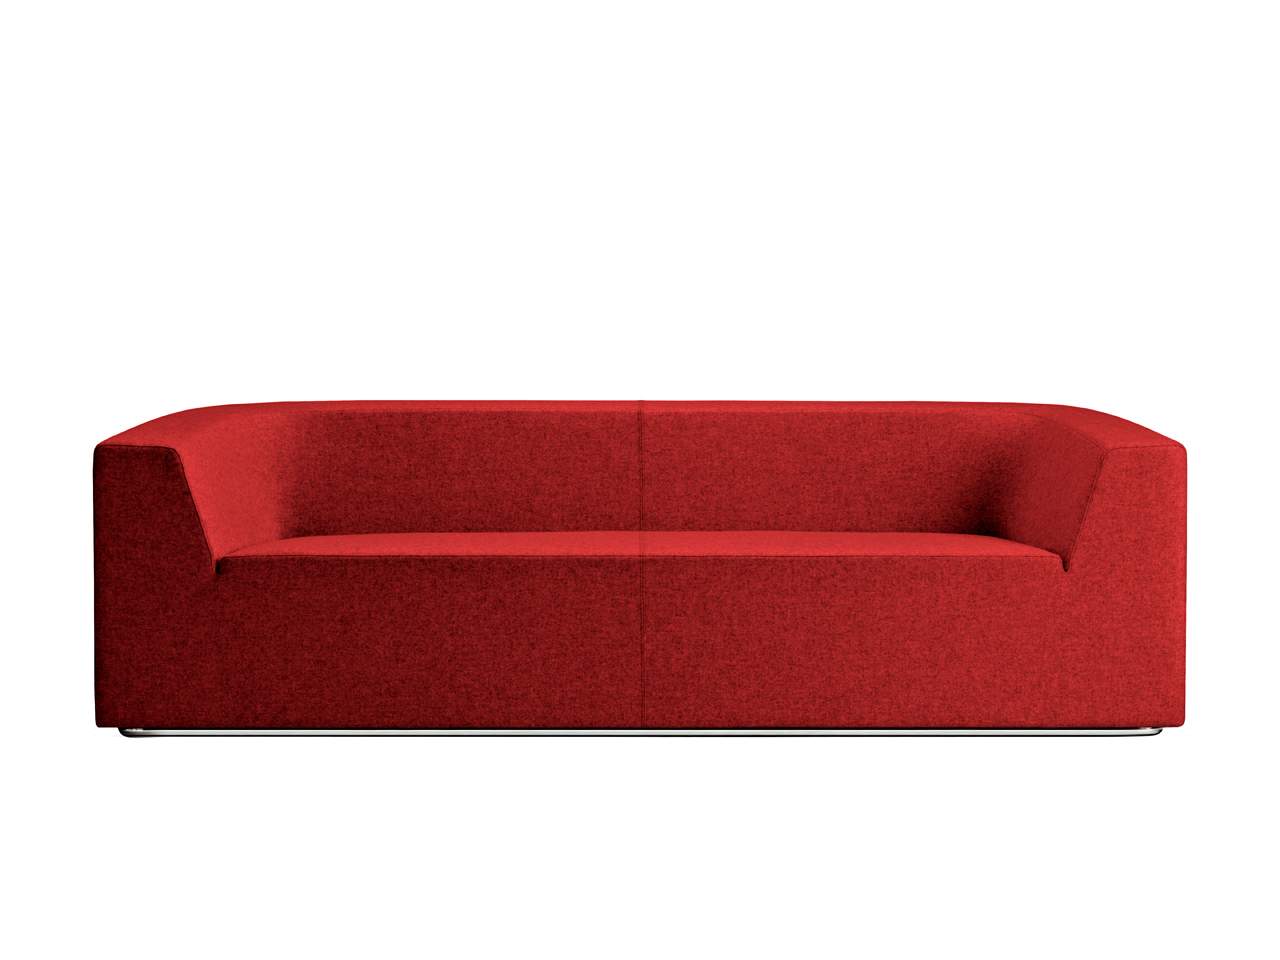 Caslon Sofa Collection by Brad Ascalon for Mitab